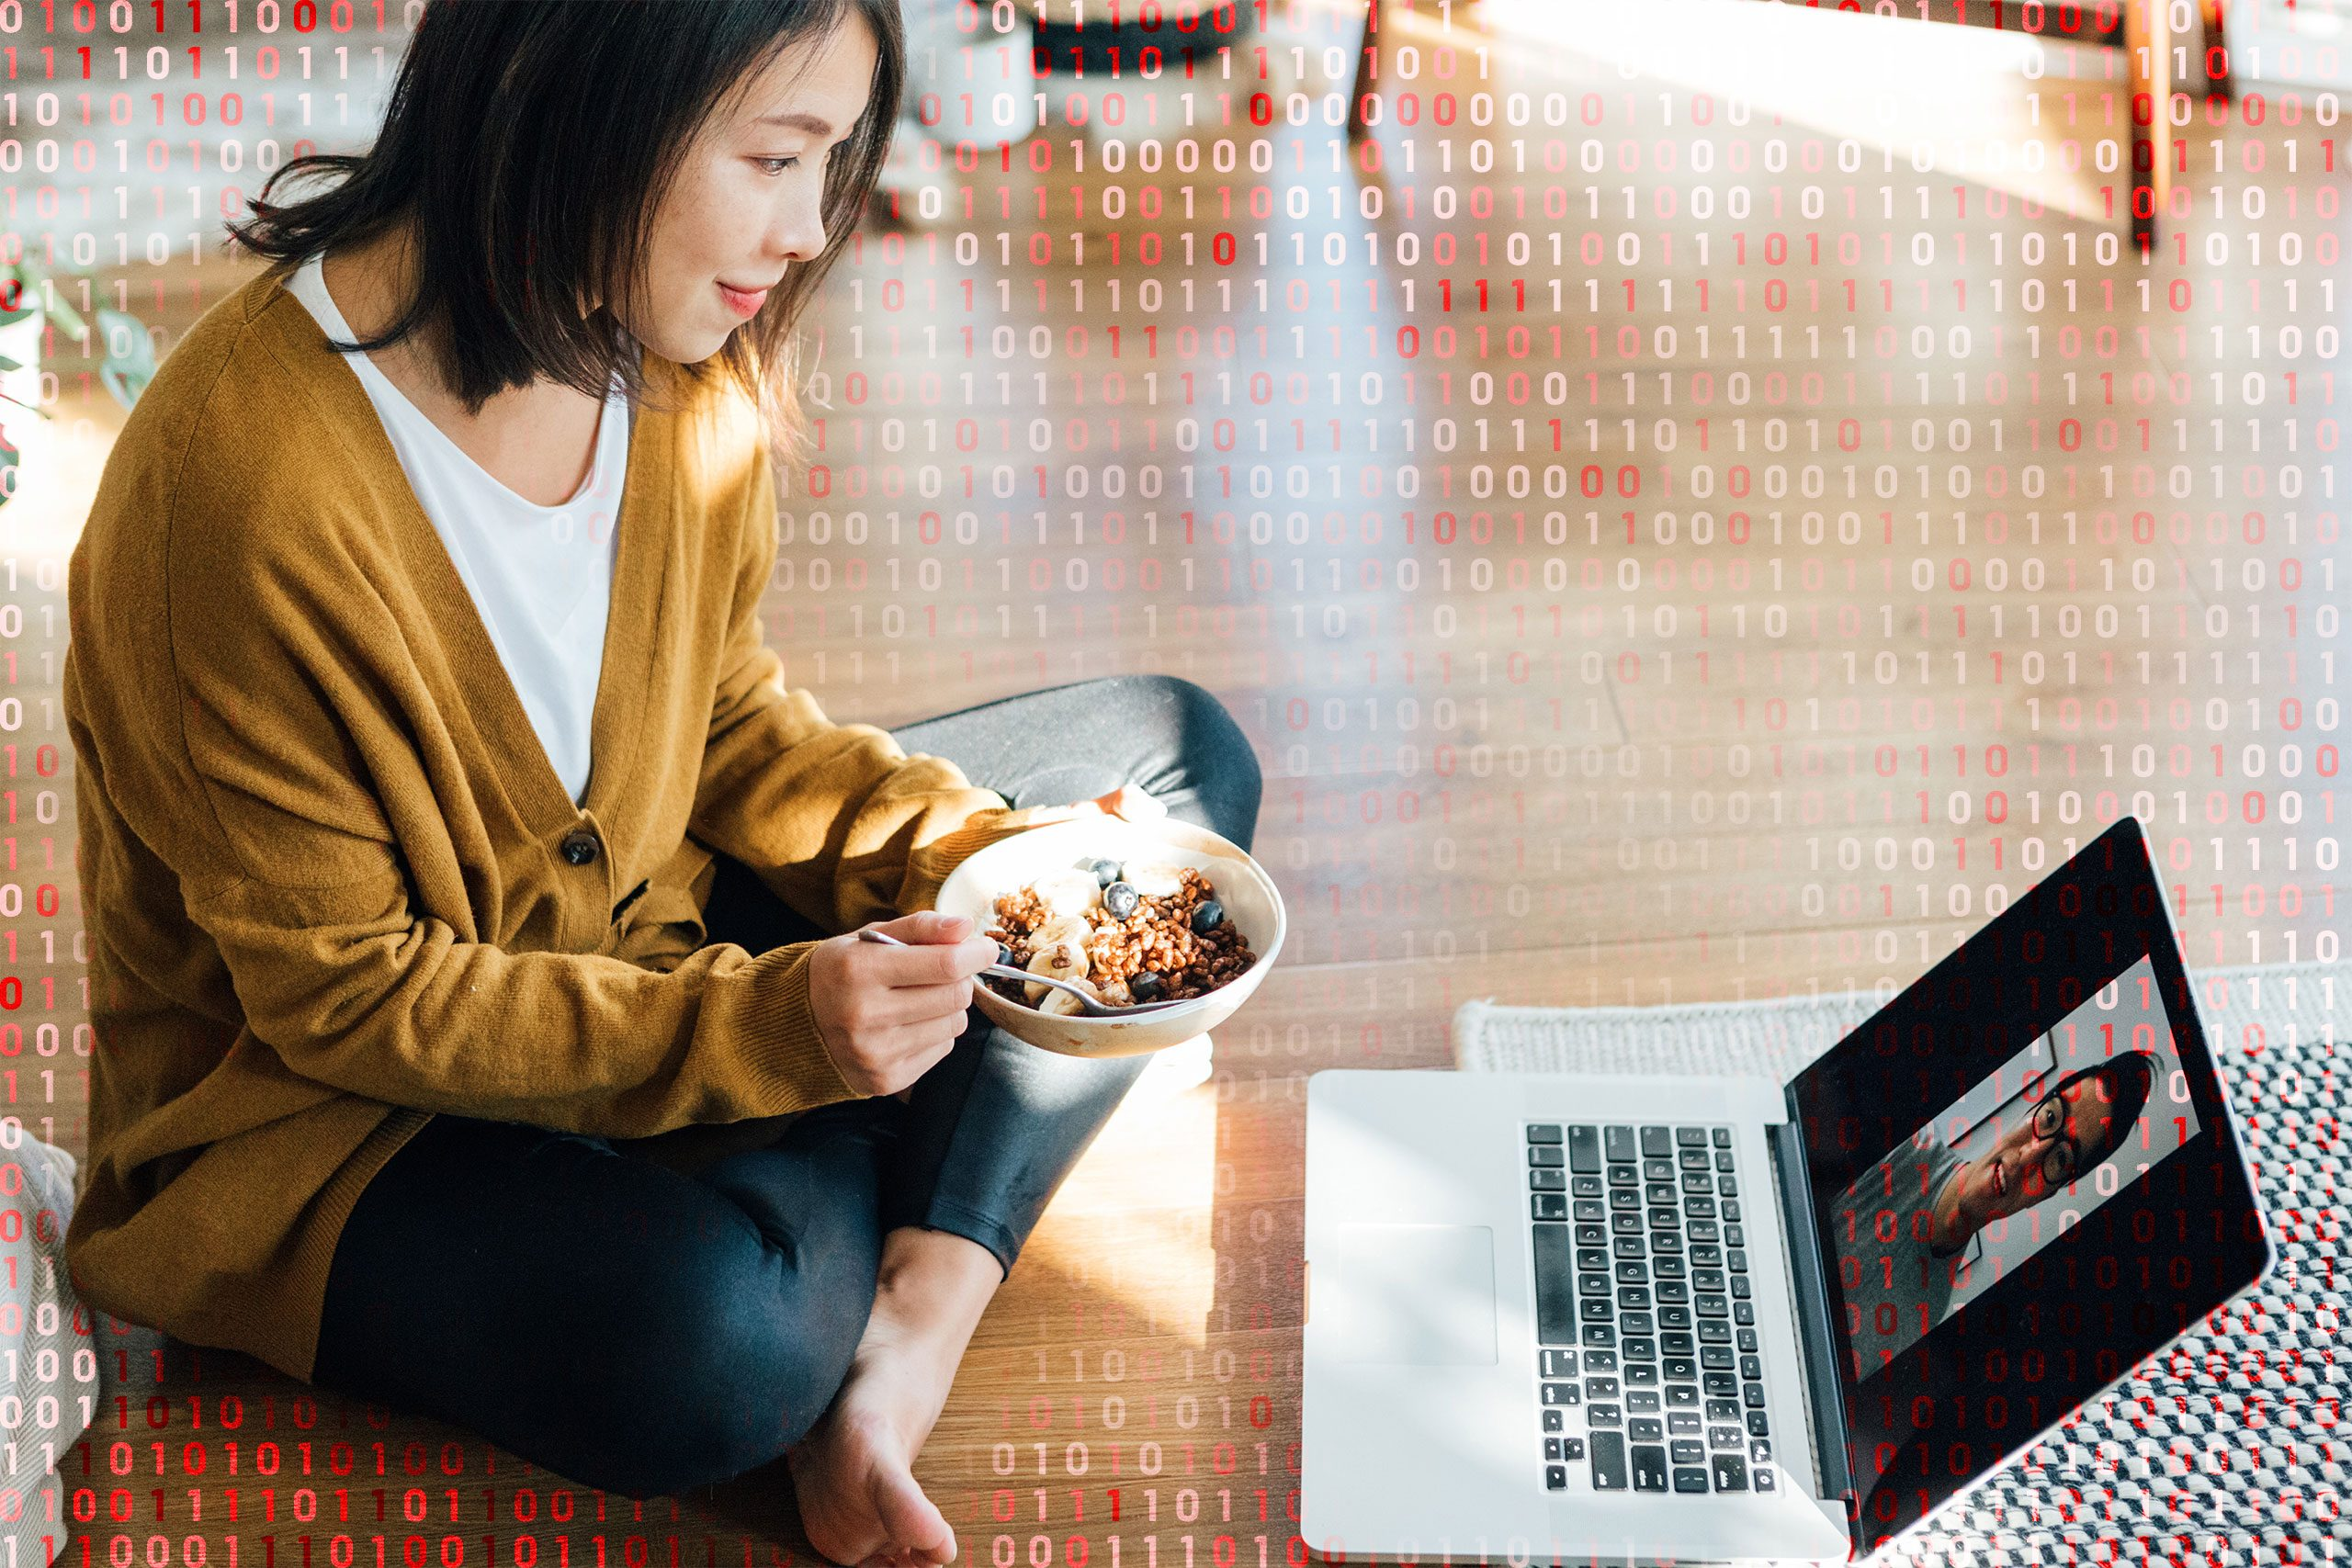 woman eating cereal while using zoom; computer code overlay